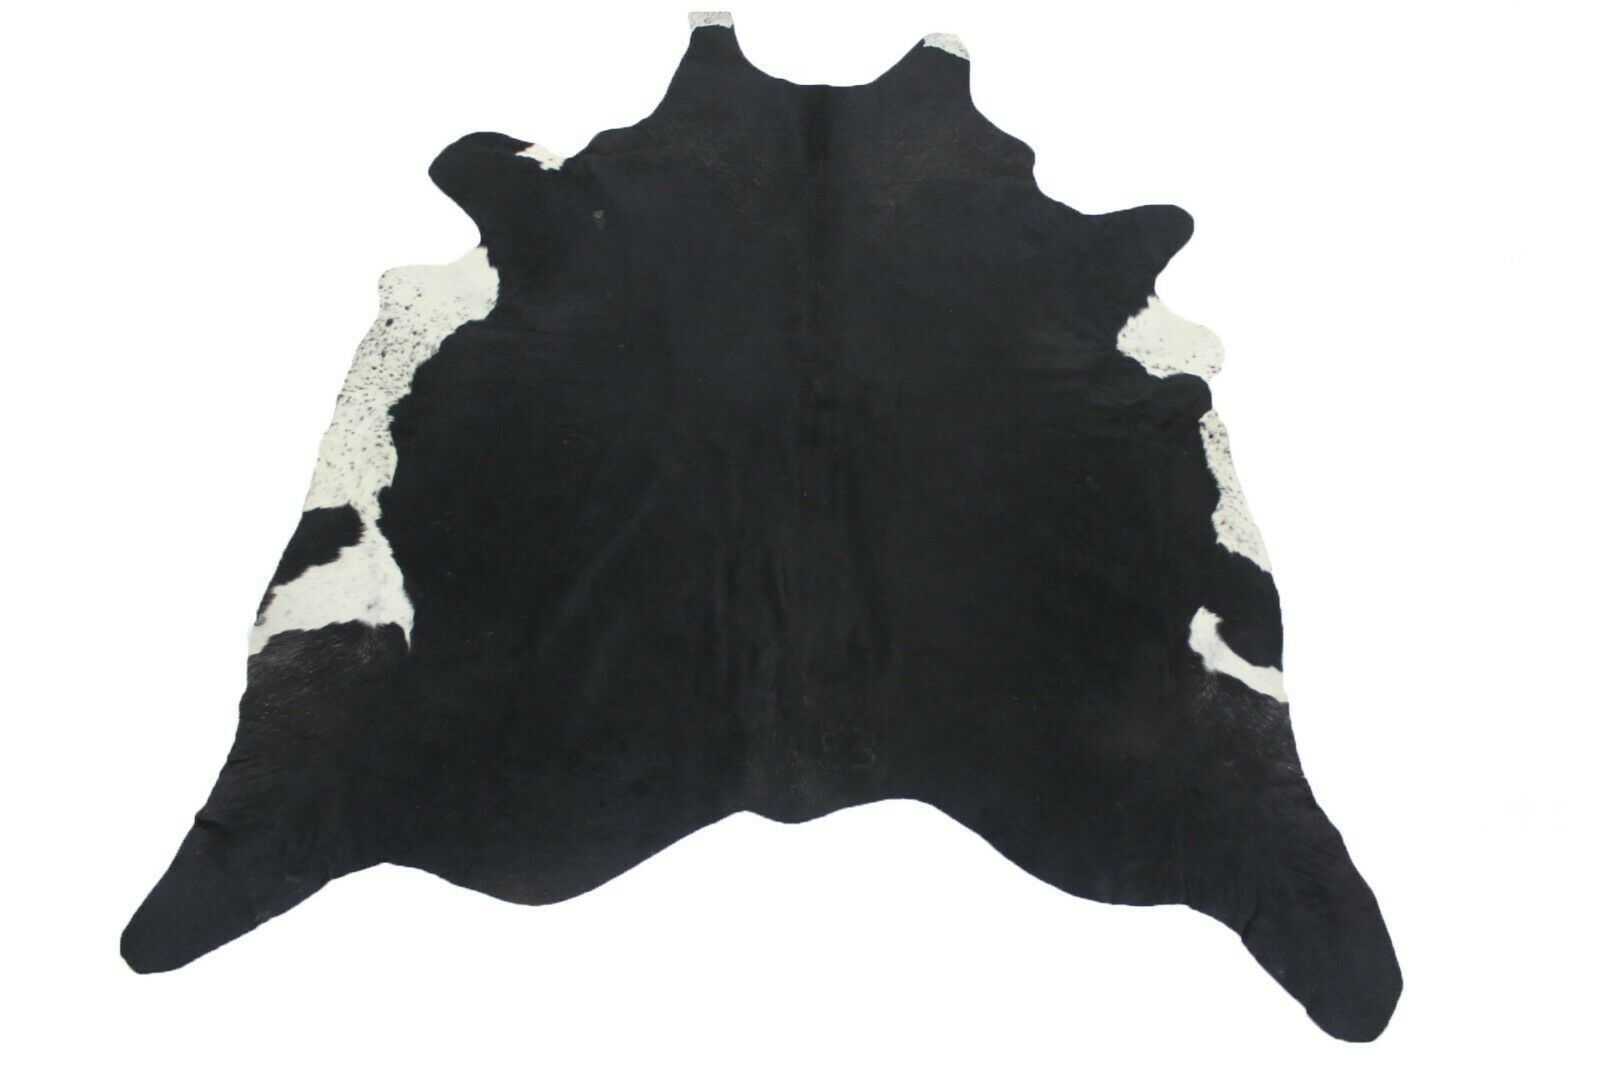 Details About Natural Cowhide Rug Belly White Large 6x7 Ft Cow Skin Area Rug Black And White Cow Skin Cowhide Cow Hide Rug